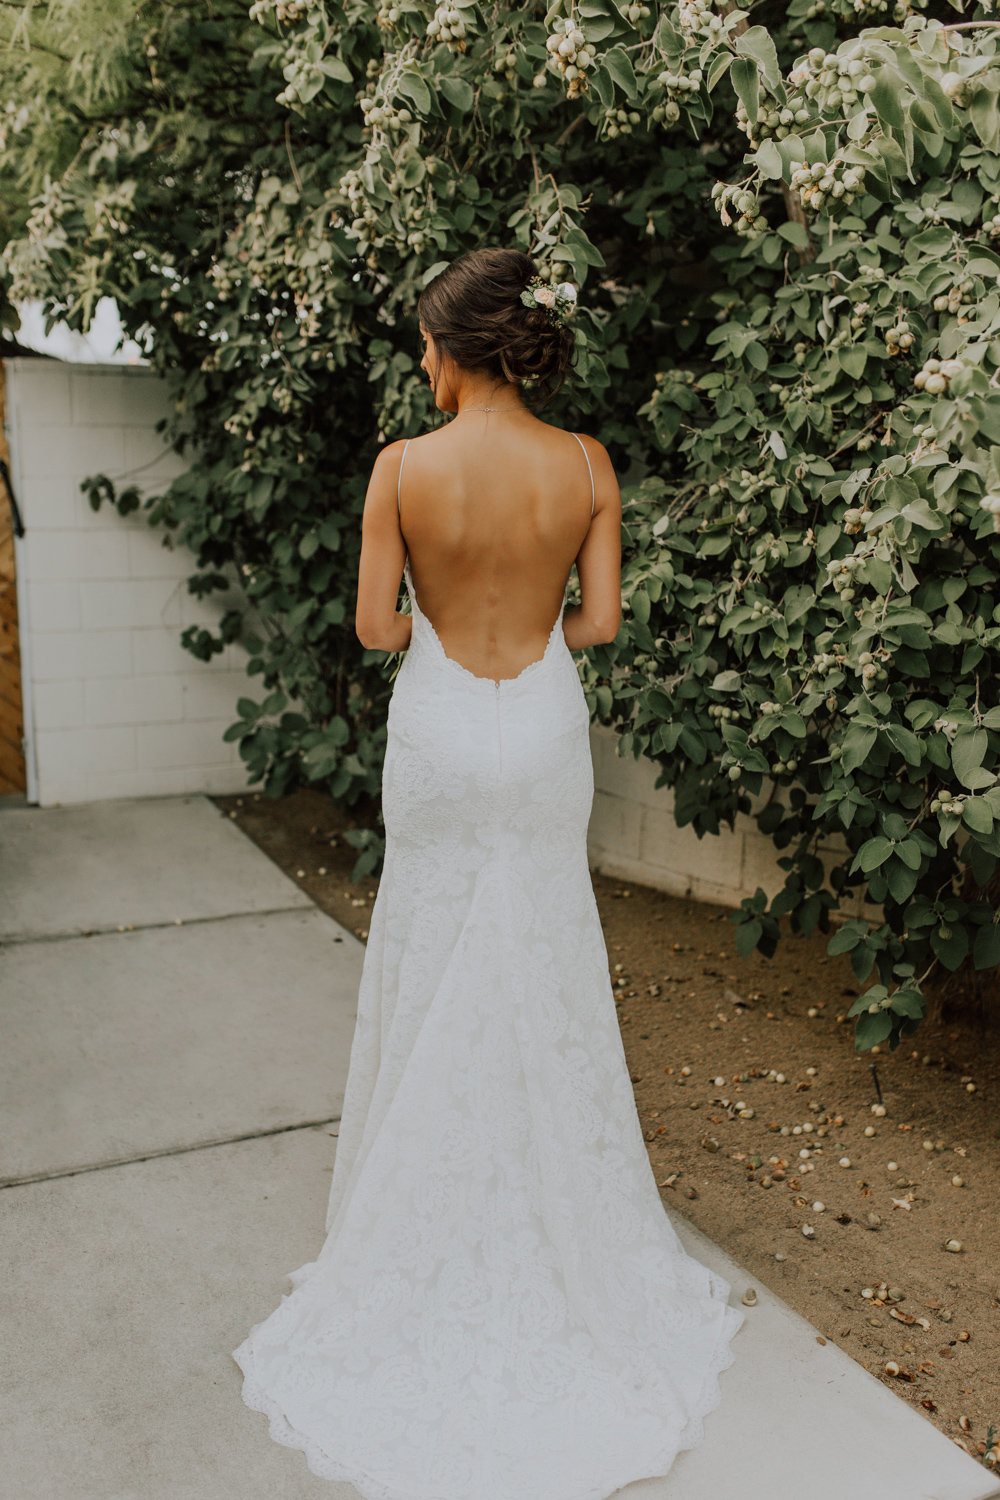 Brianna Broyles_Palm Springs Wedding Photographer_Ace Hotel Wedding_Ace Hotel Palm Springs-31